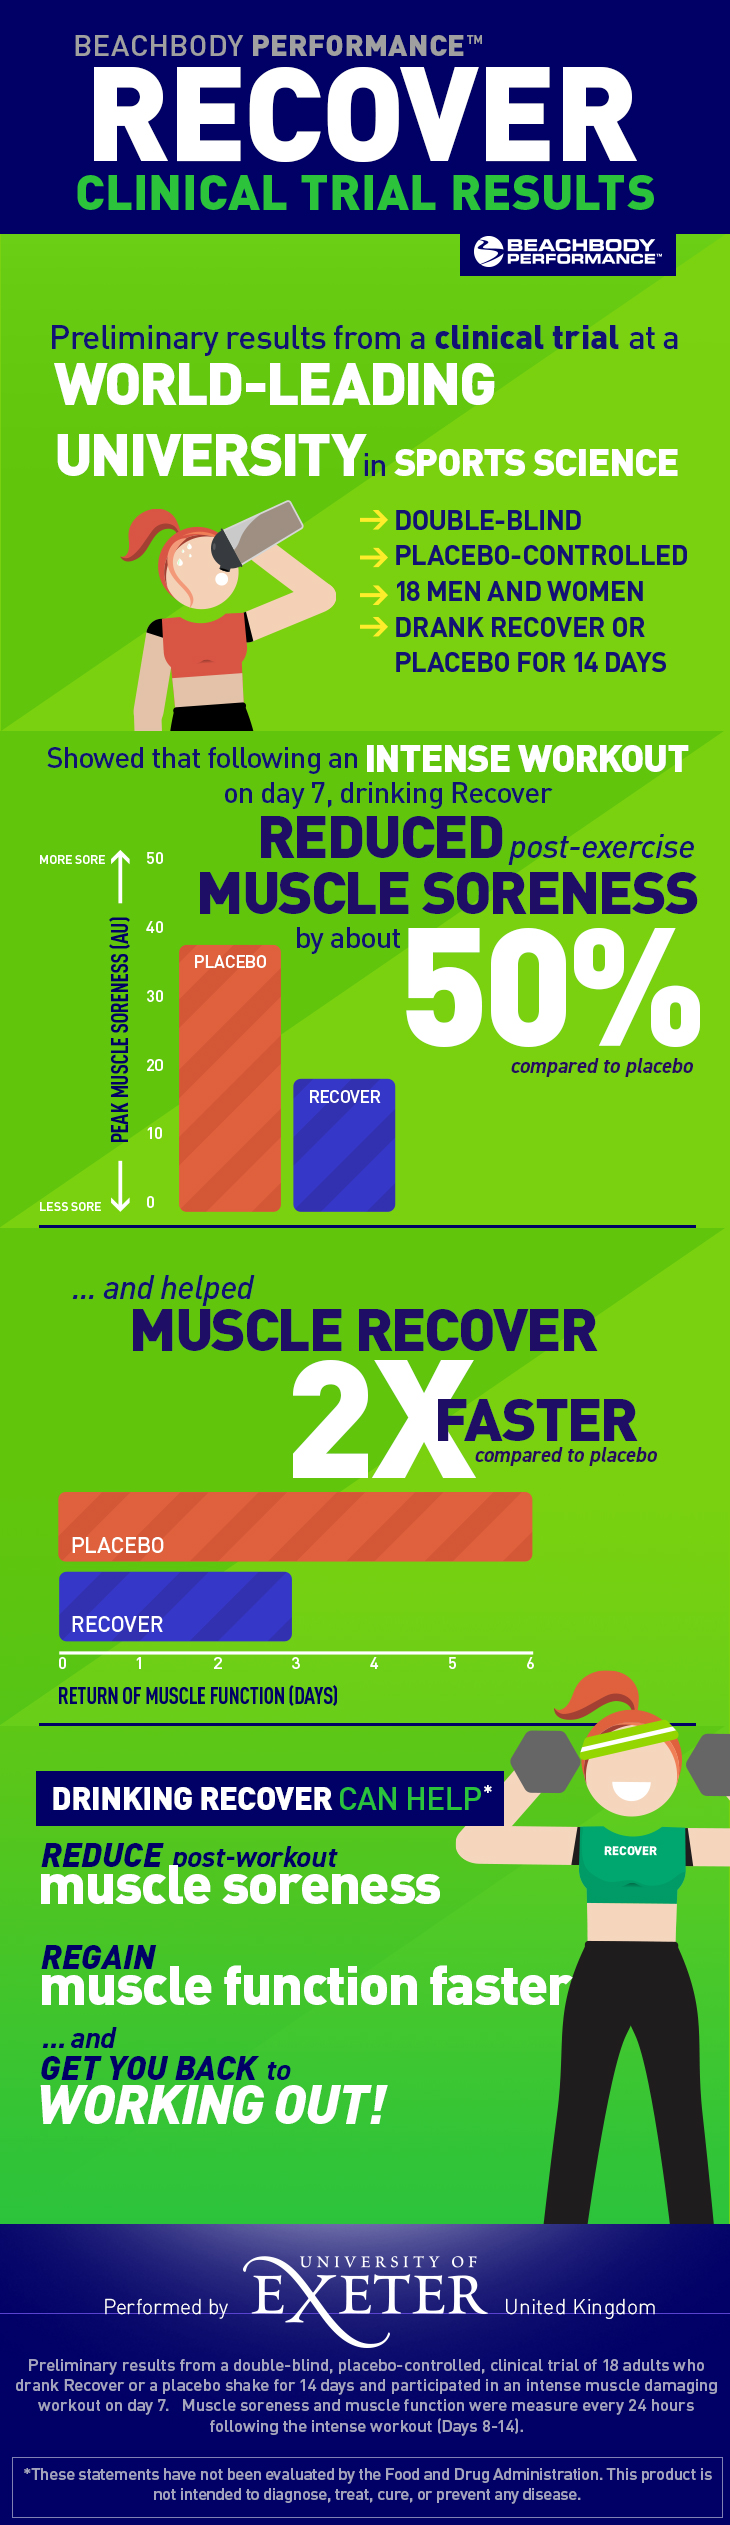 Beachbody Performance Recover